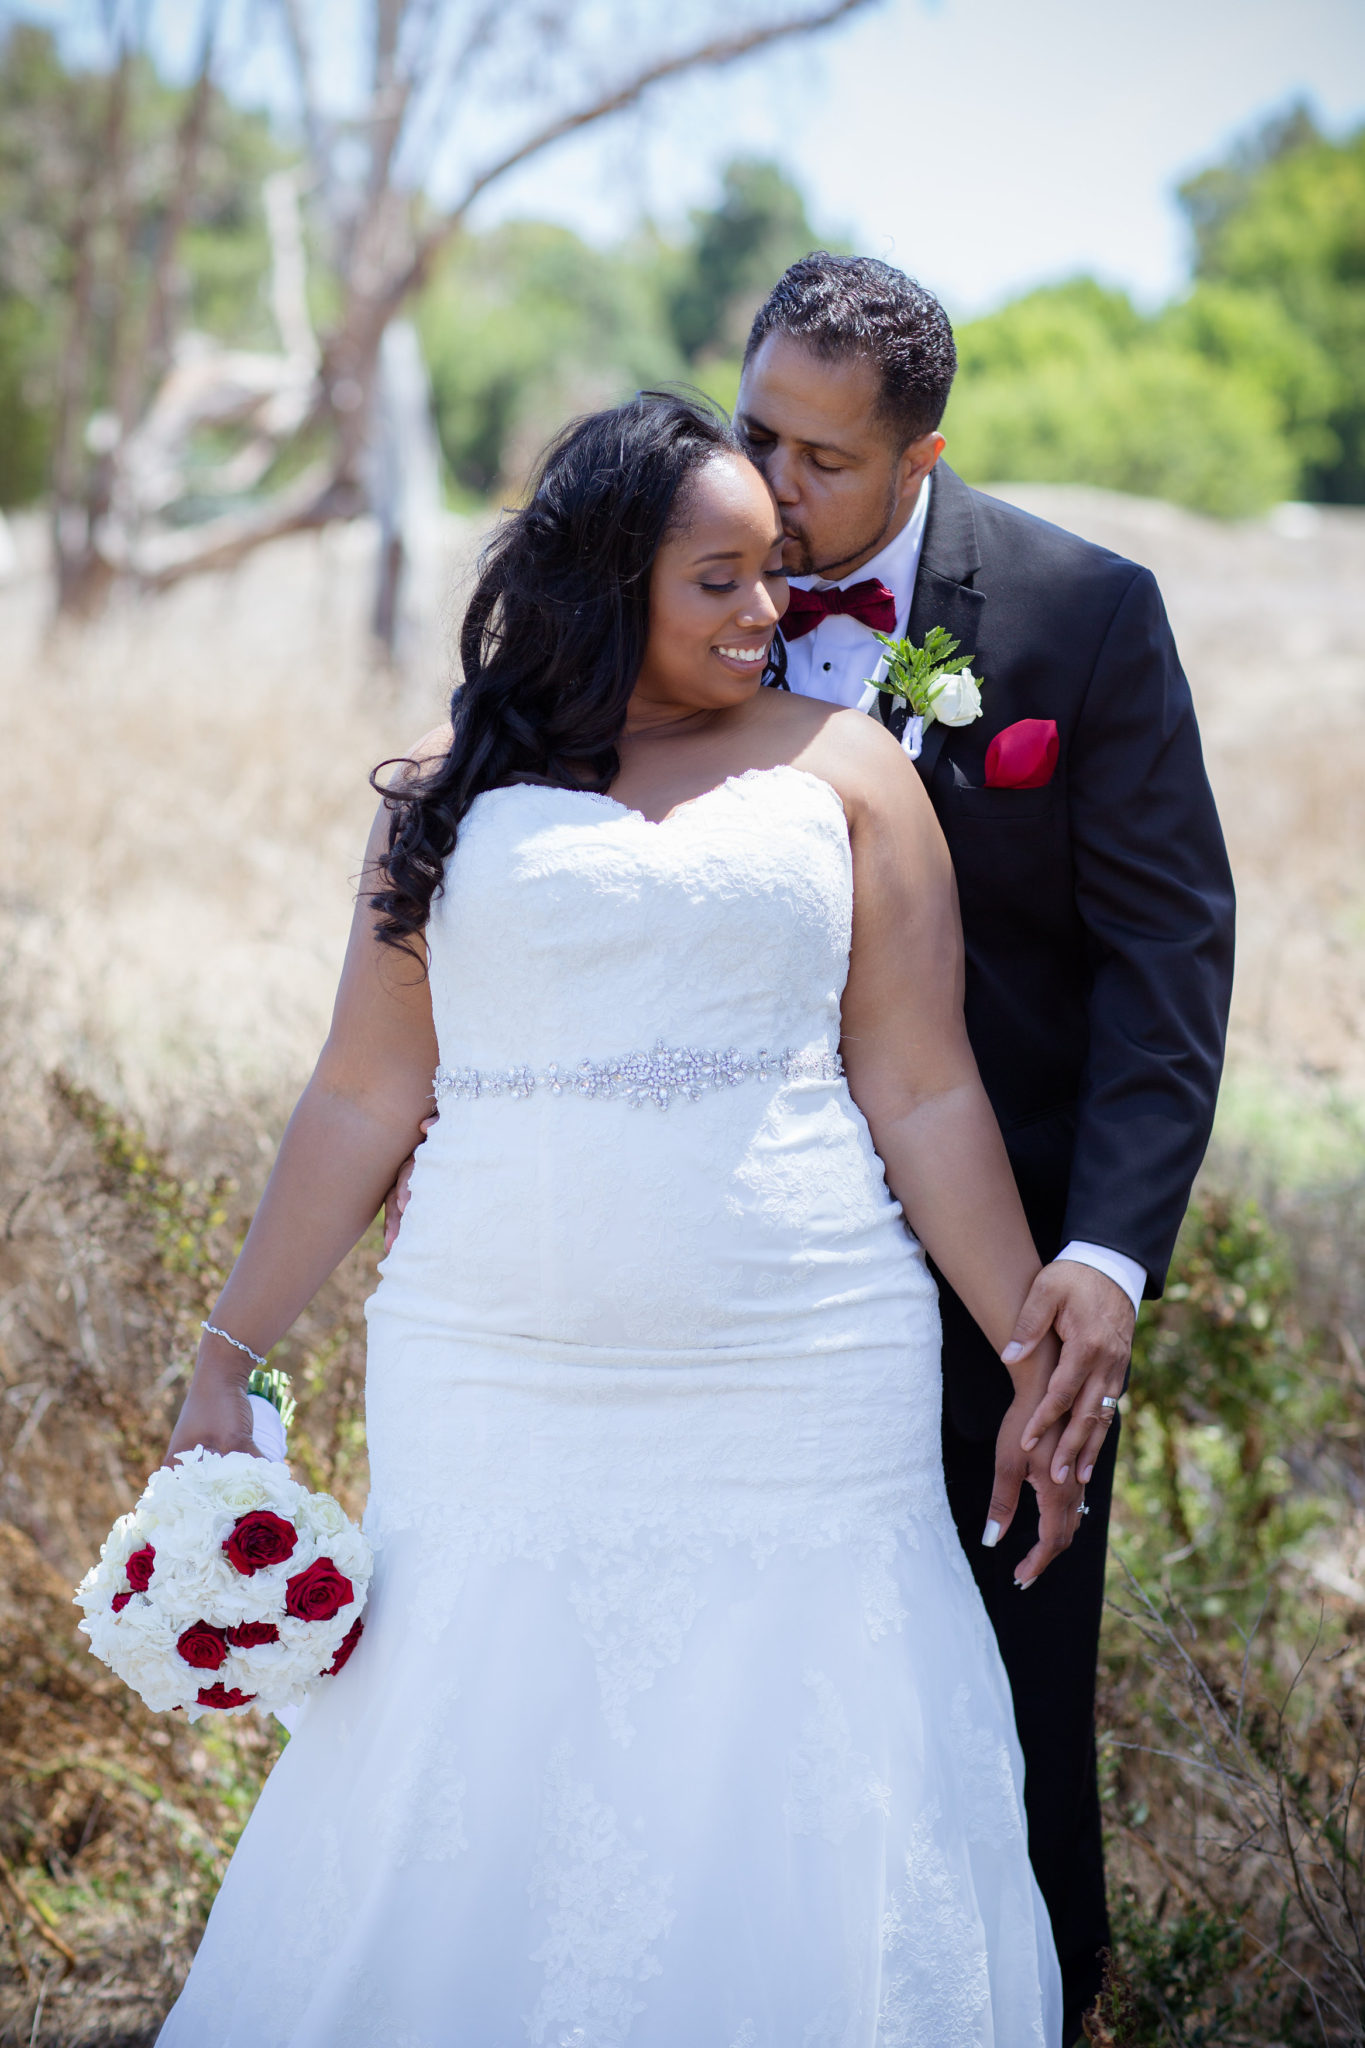 REAL WEDDING  Red White and Black Wedding  Blossom Blue Photography  The Pretty Pear Bride